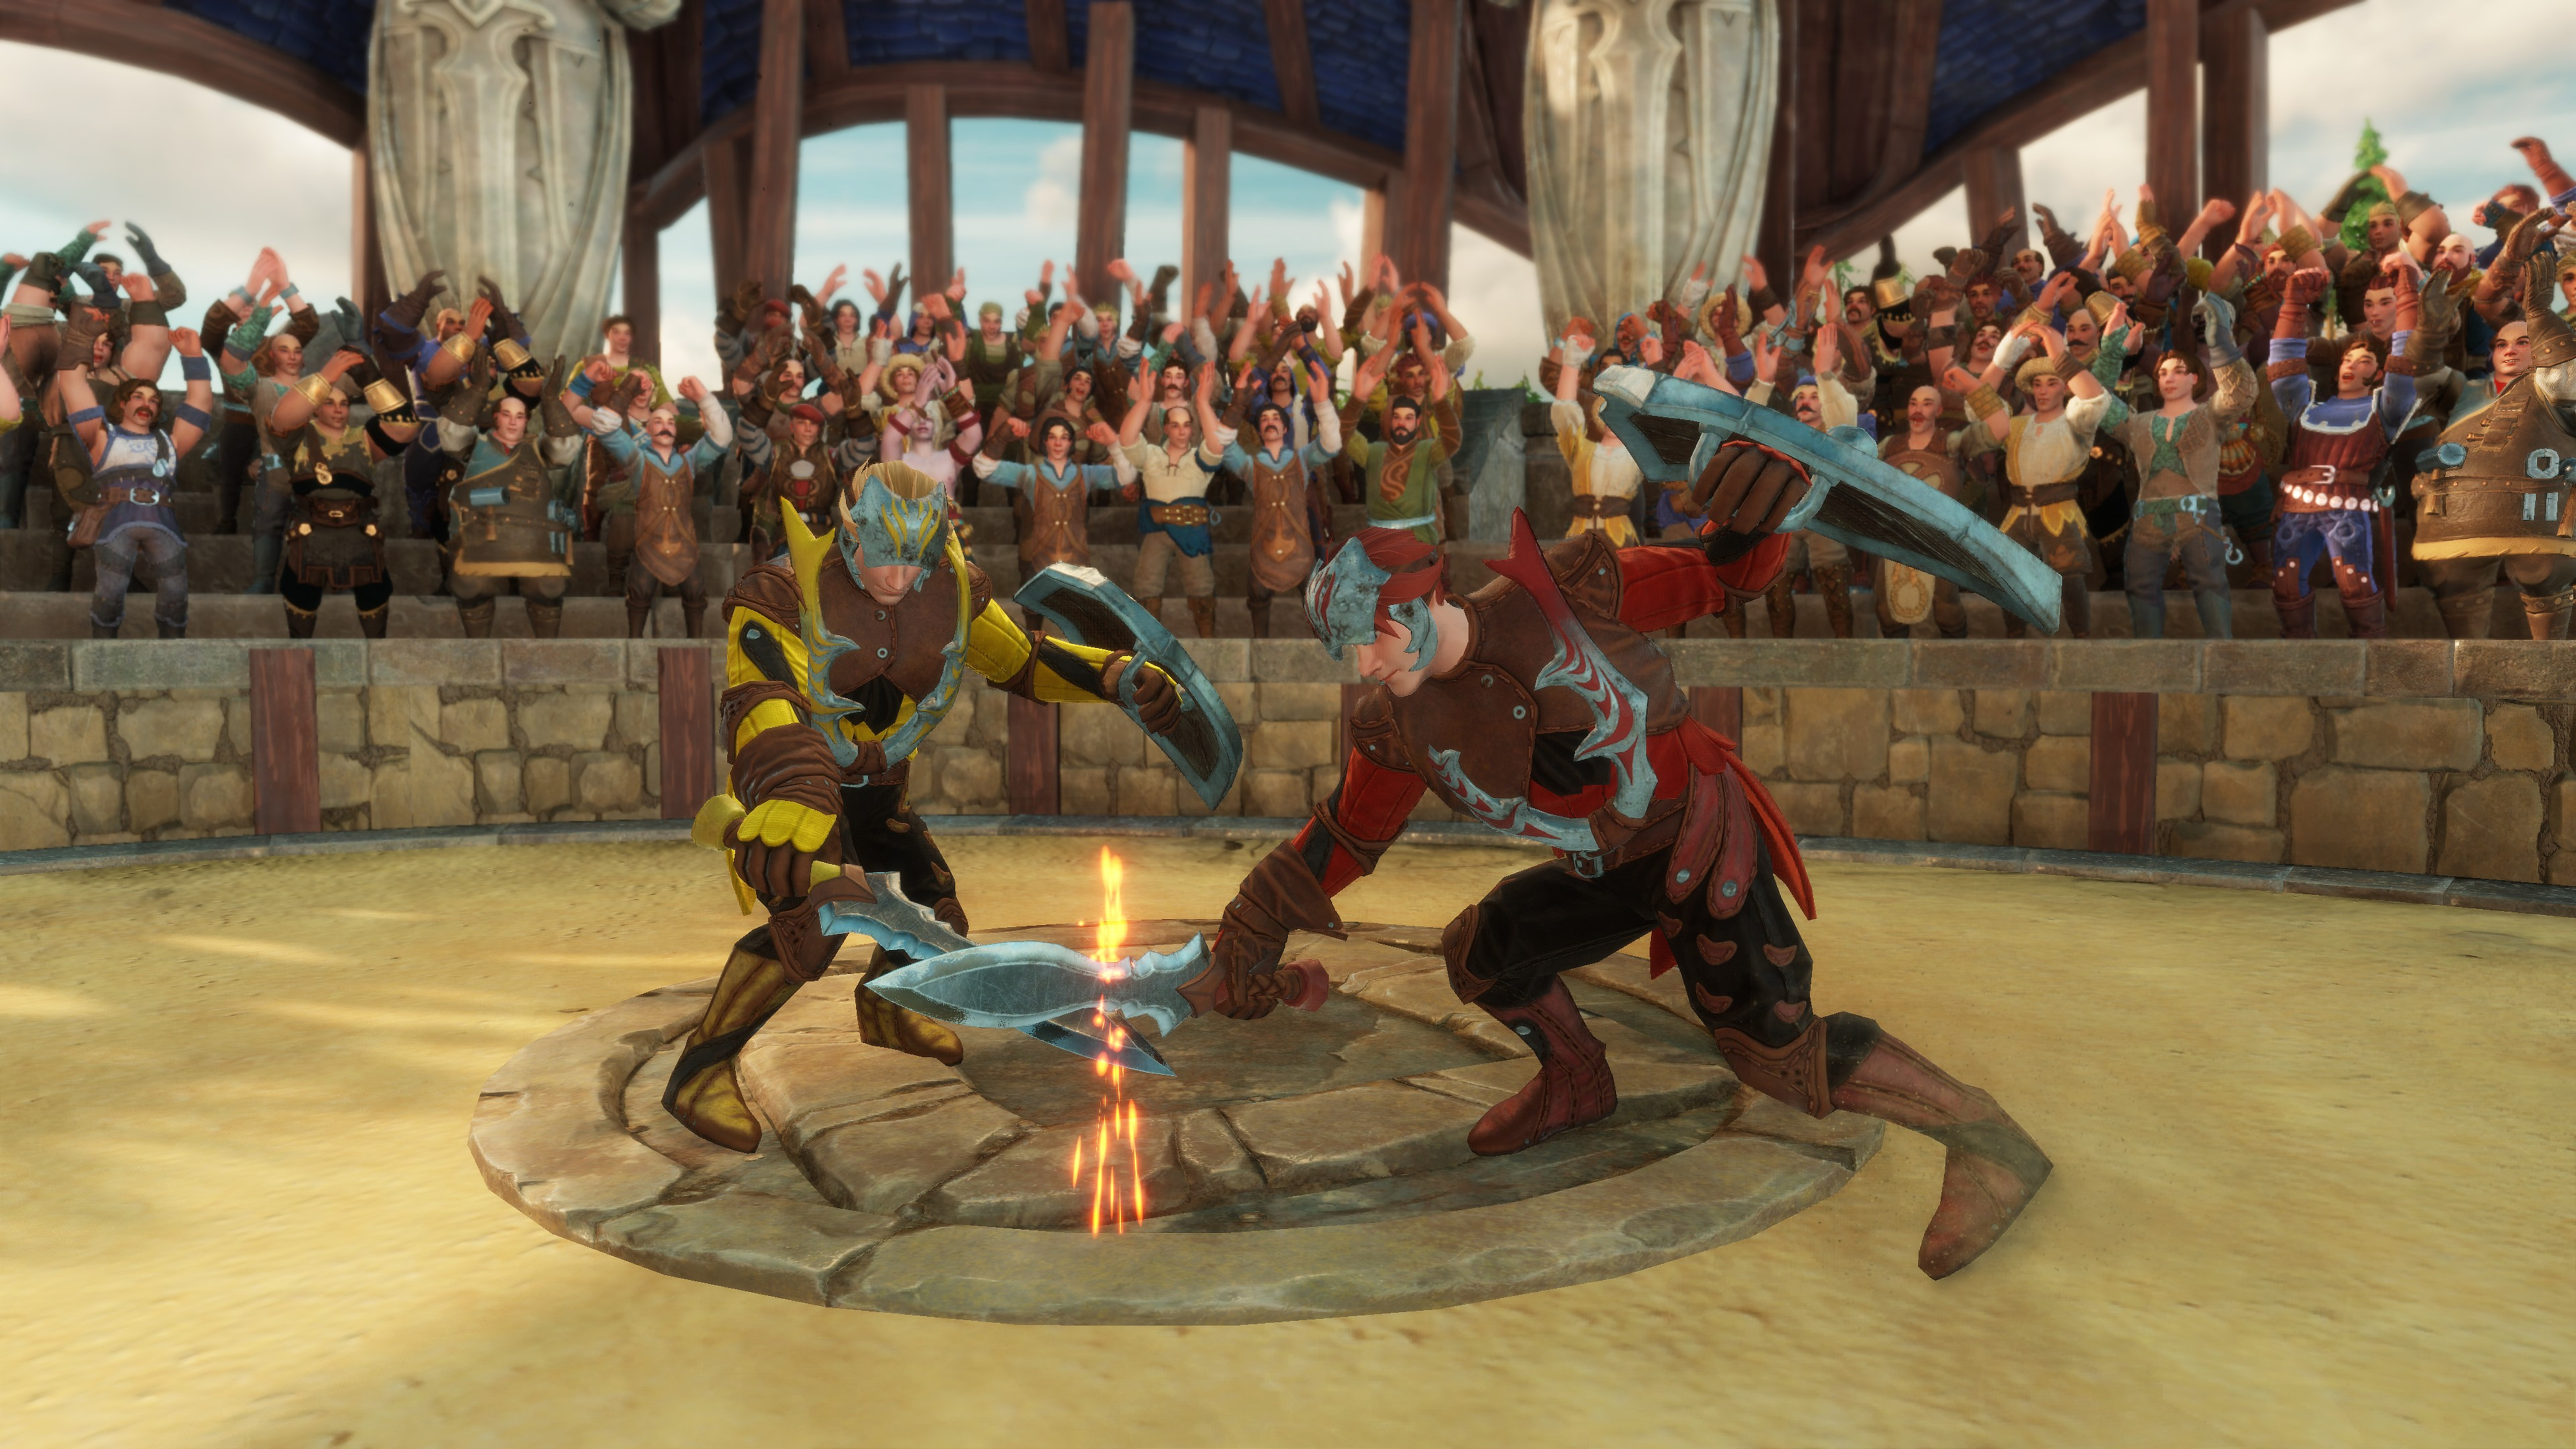 Lucha Libre Juego Online Ubisoft Página Oficial The Settlers